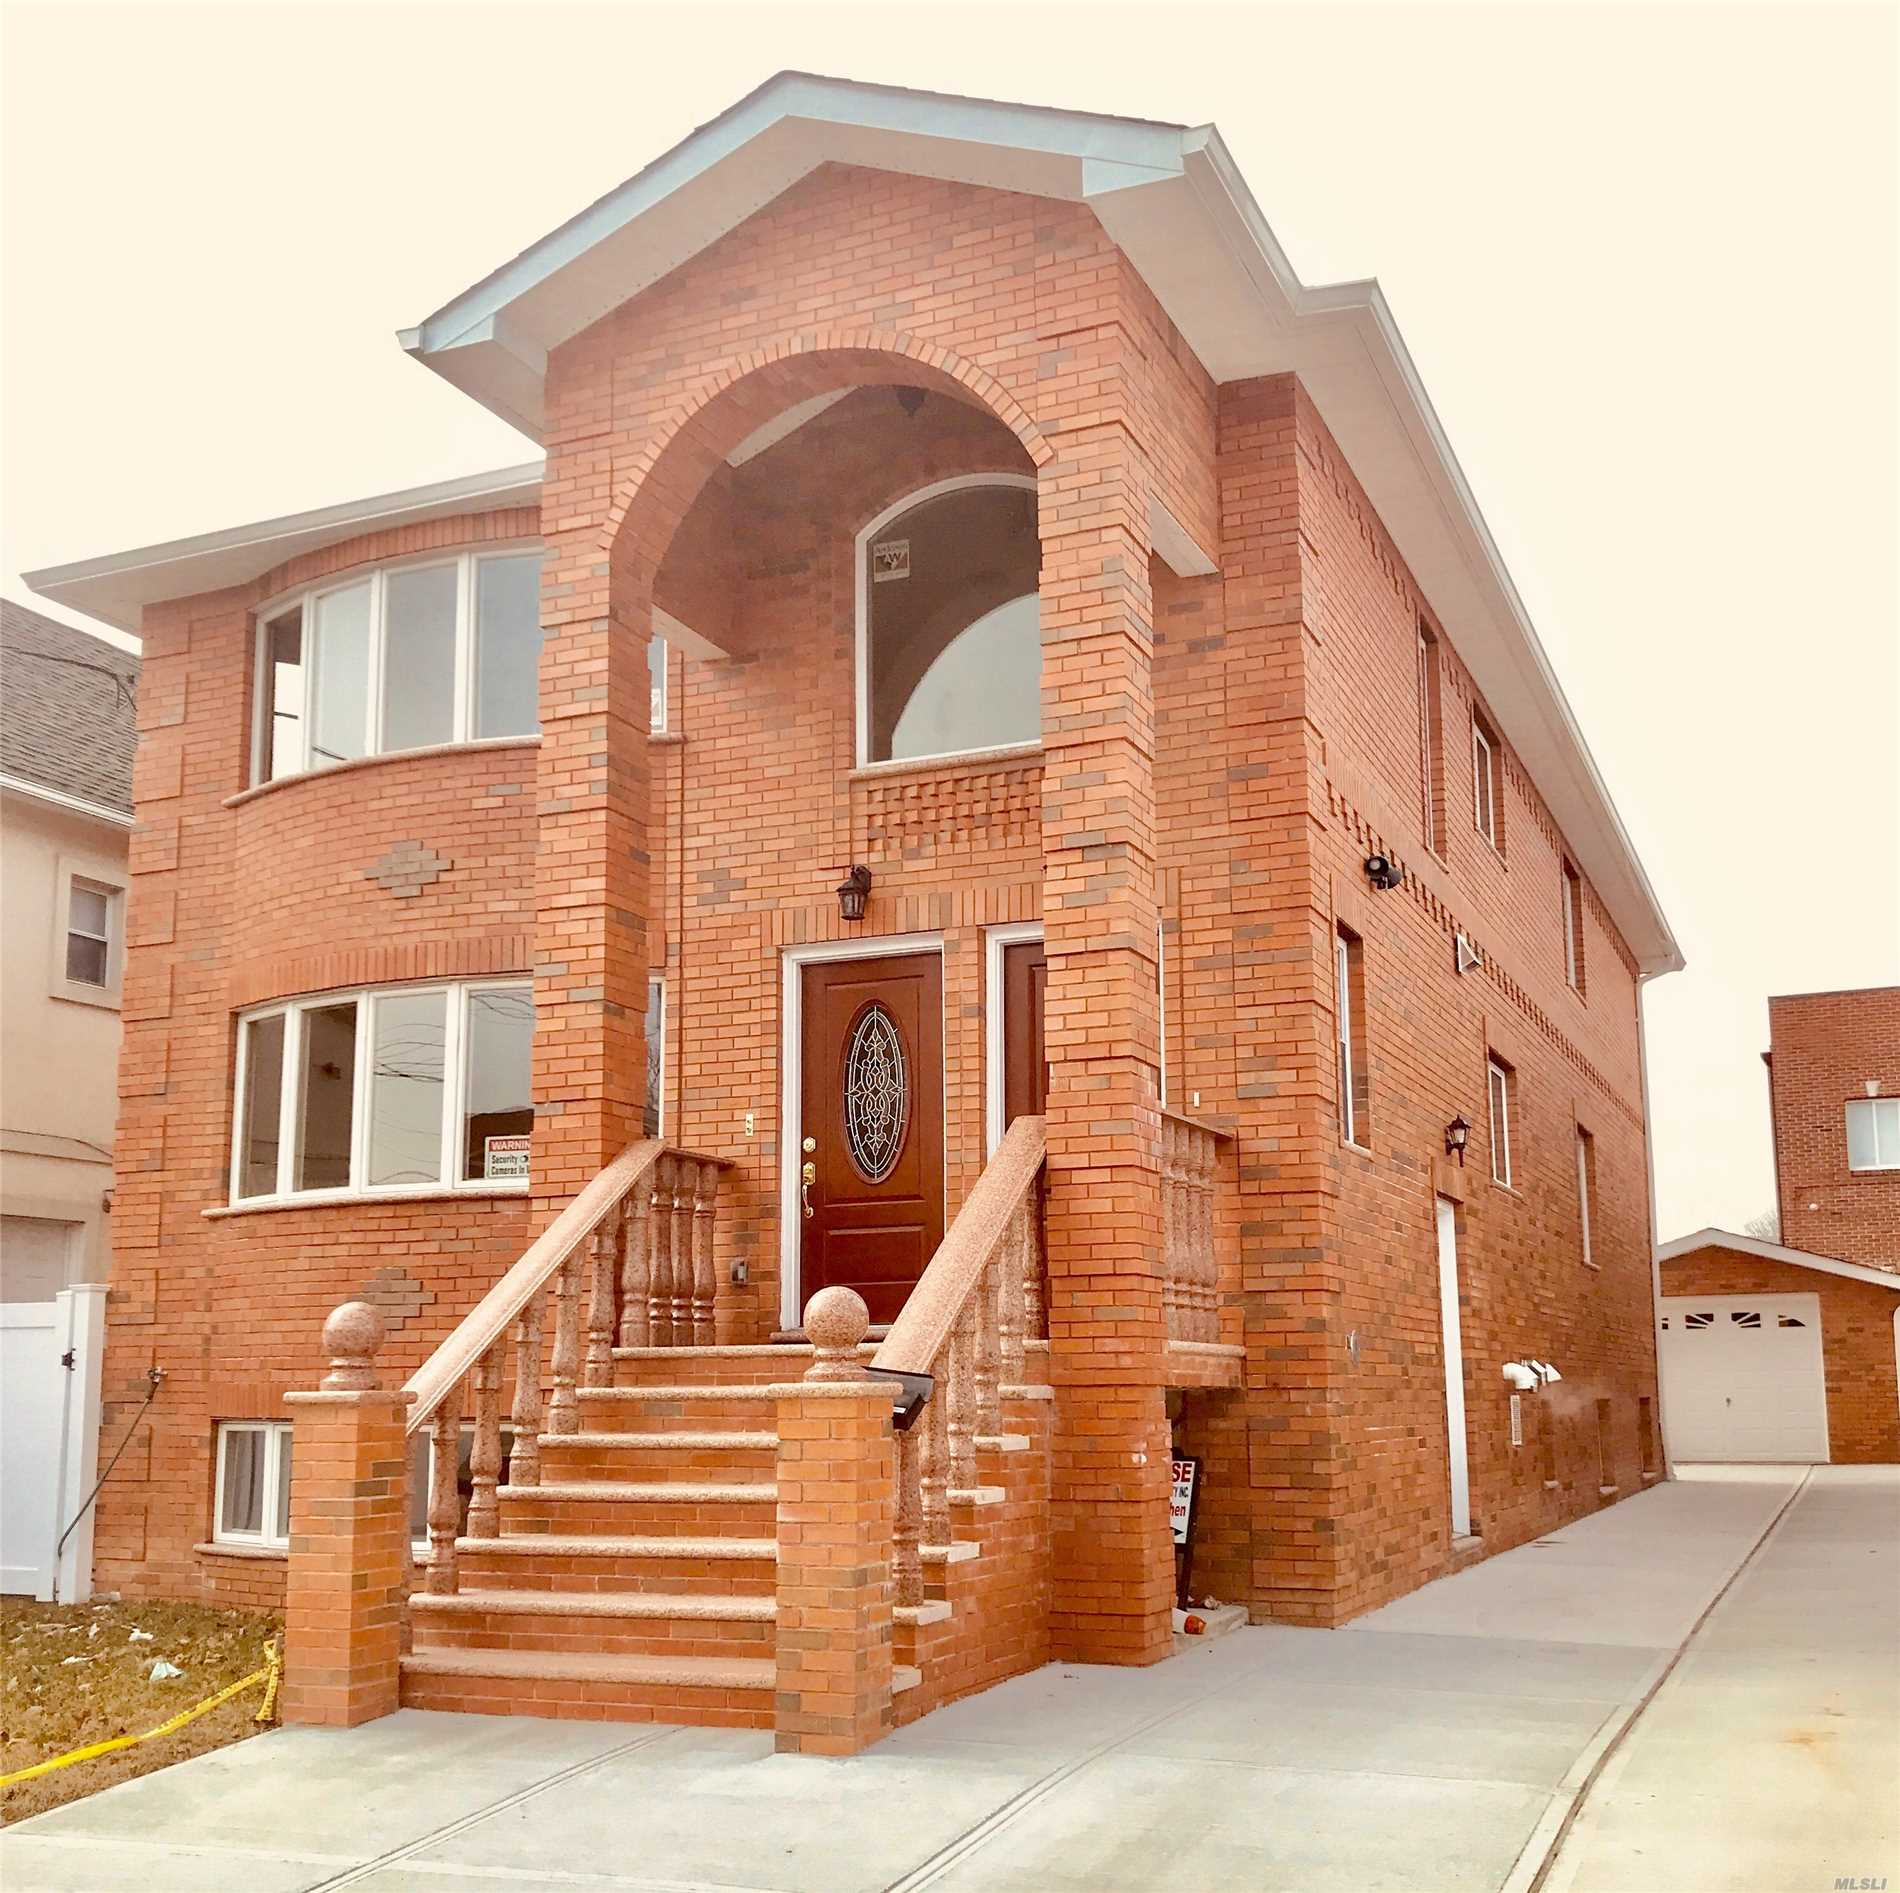 Gorgeous (40X100) Brand New Legal 2-Family In Very Convenient Neighborhood. Potential To Turn Into Professional Usage. Extra-Large Building Size (25X54). Top-Of-The-Line Building Materials. High-Ceiling Basement With Separate Entrance. Beautiful Hardwood Floor. Close To Shops, Bus Stop And Elementary School. Convenient To All.